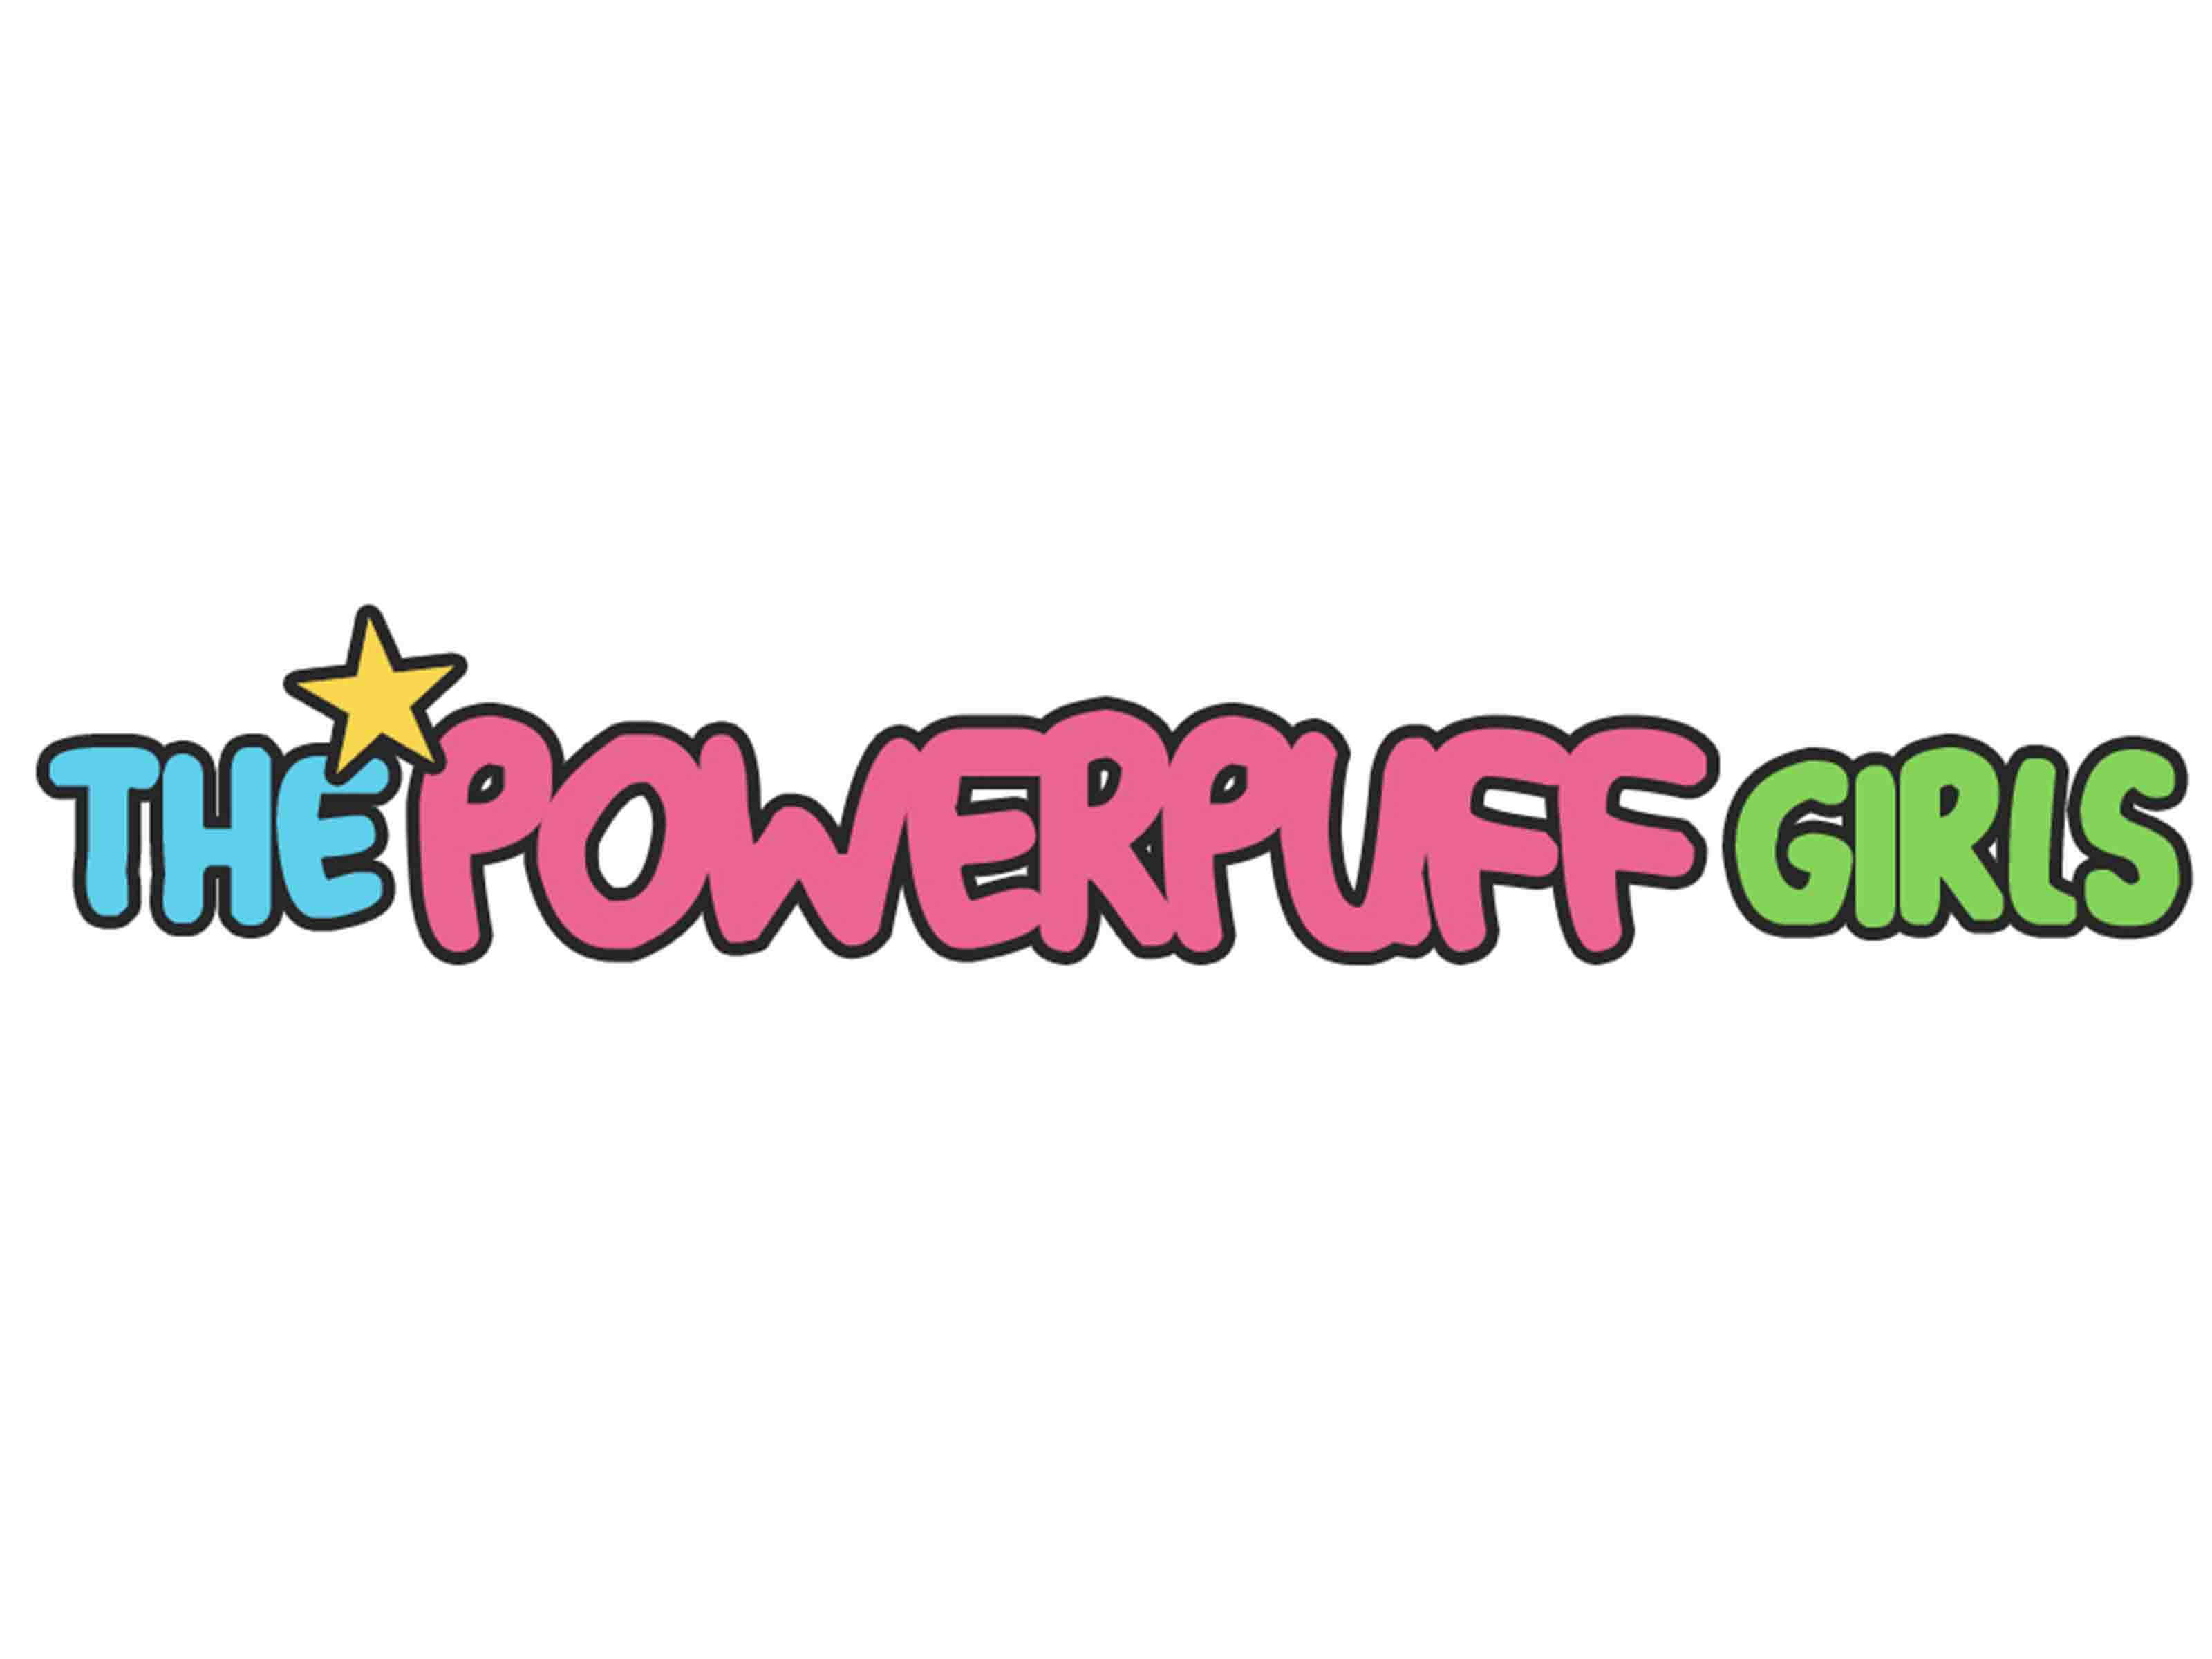 Hen Party Themes - The Powerpuff Girls